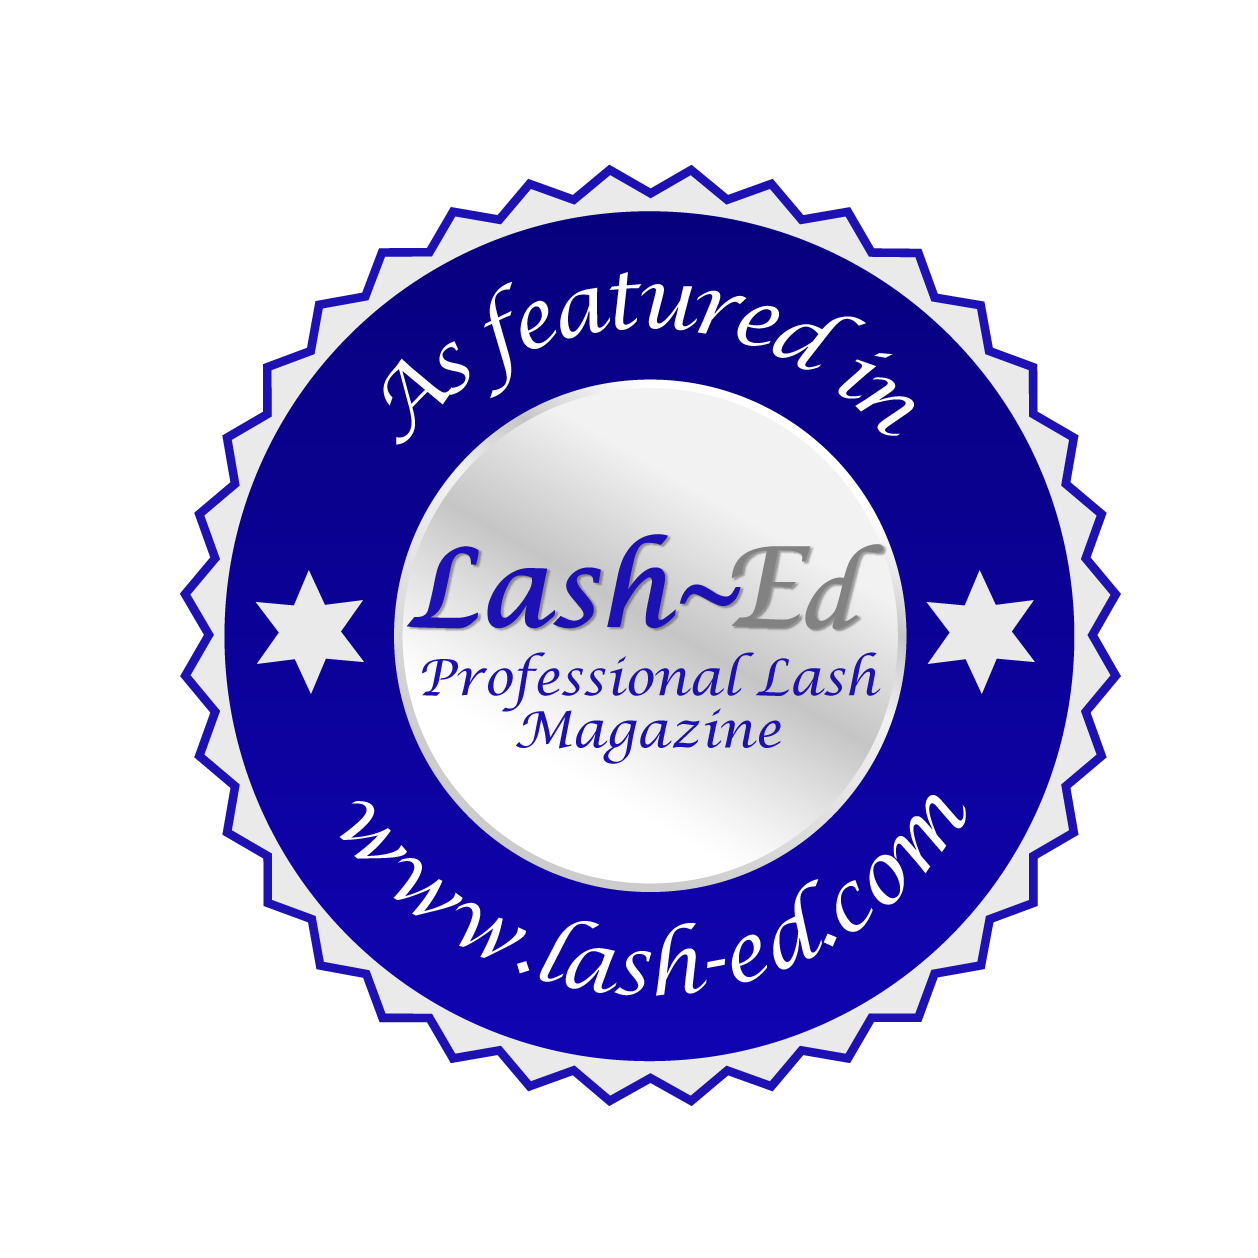 Lash-Ed As Featured